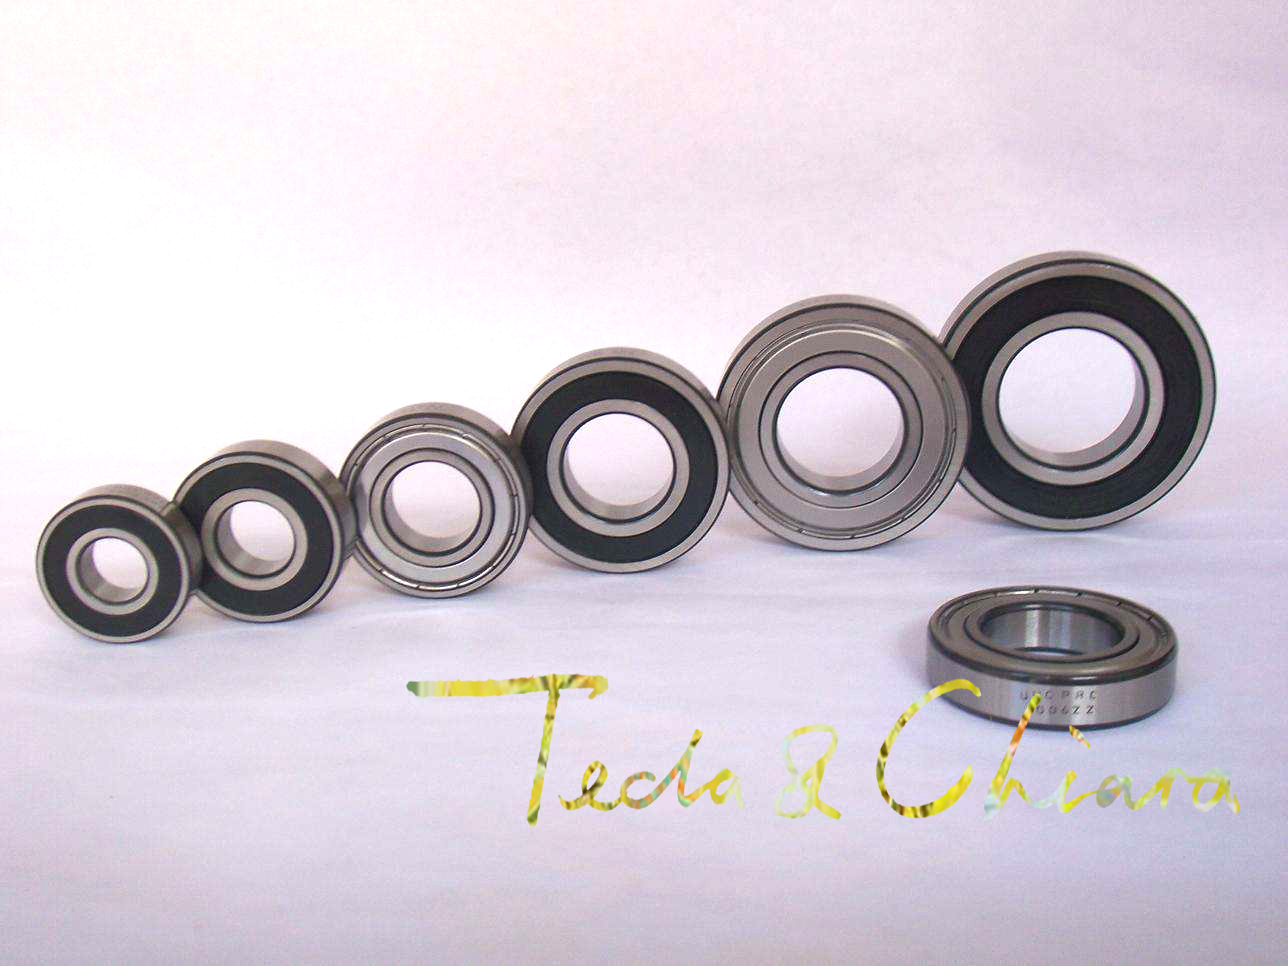 693 693ZZ 693RS 693-2Z 693Z 693-2RS ZZ RS RZ 2RZ R830ZZ 1000093 639/3ZZ Deep Groove Ball Bearings 3 x 8 x 4mm High Quality 604 604zz 604rs 604 2z 604z 604 2rs zz rs rz 2rz deep groove ball bearings 4 x 12 x 4mm high quality